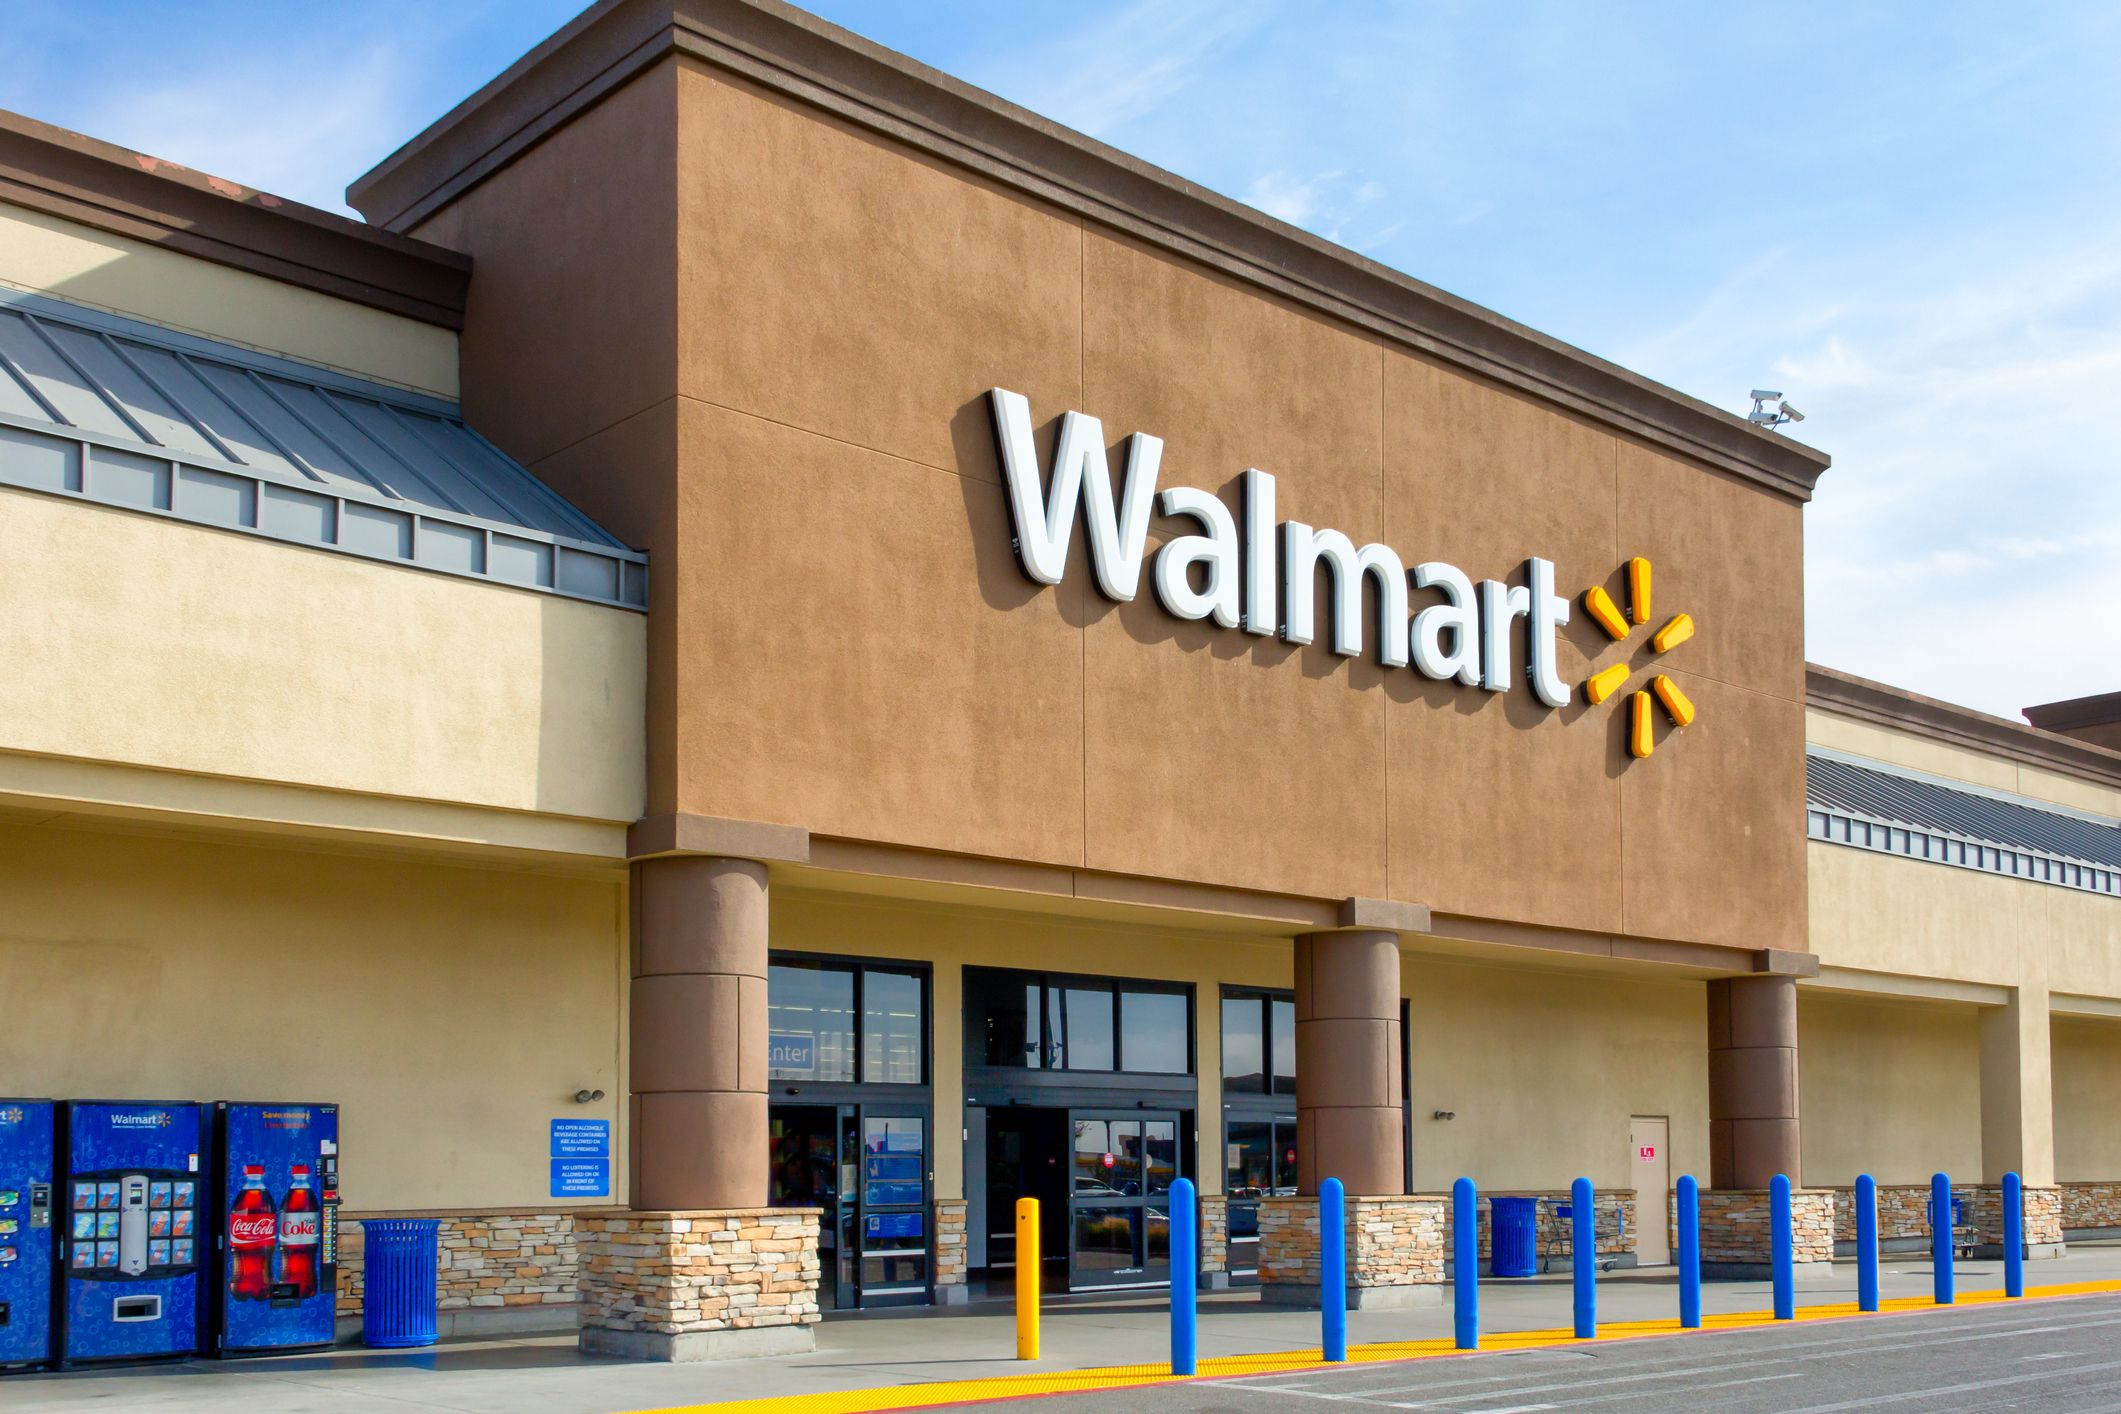 Walmart Christmas Hours 2020: Are Walmart Stores Open on Christmas Day